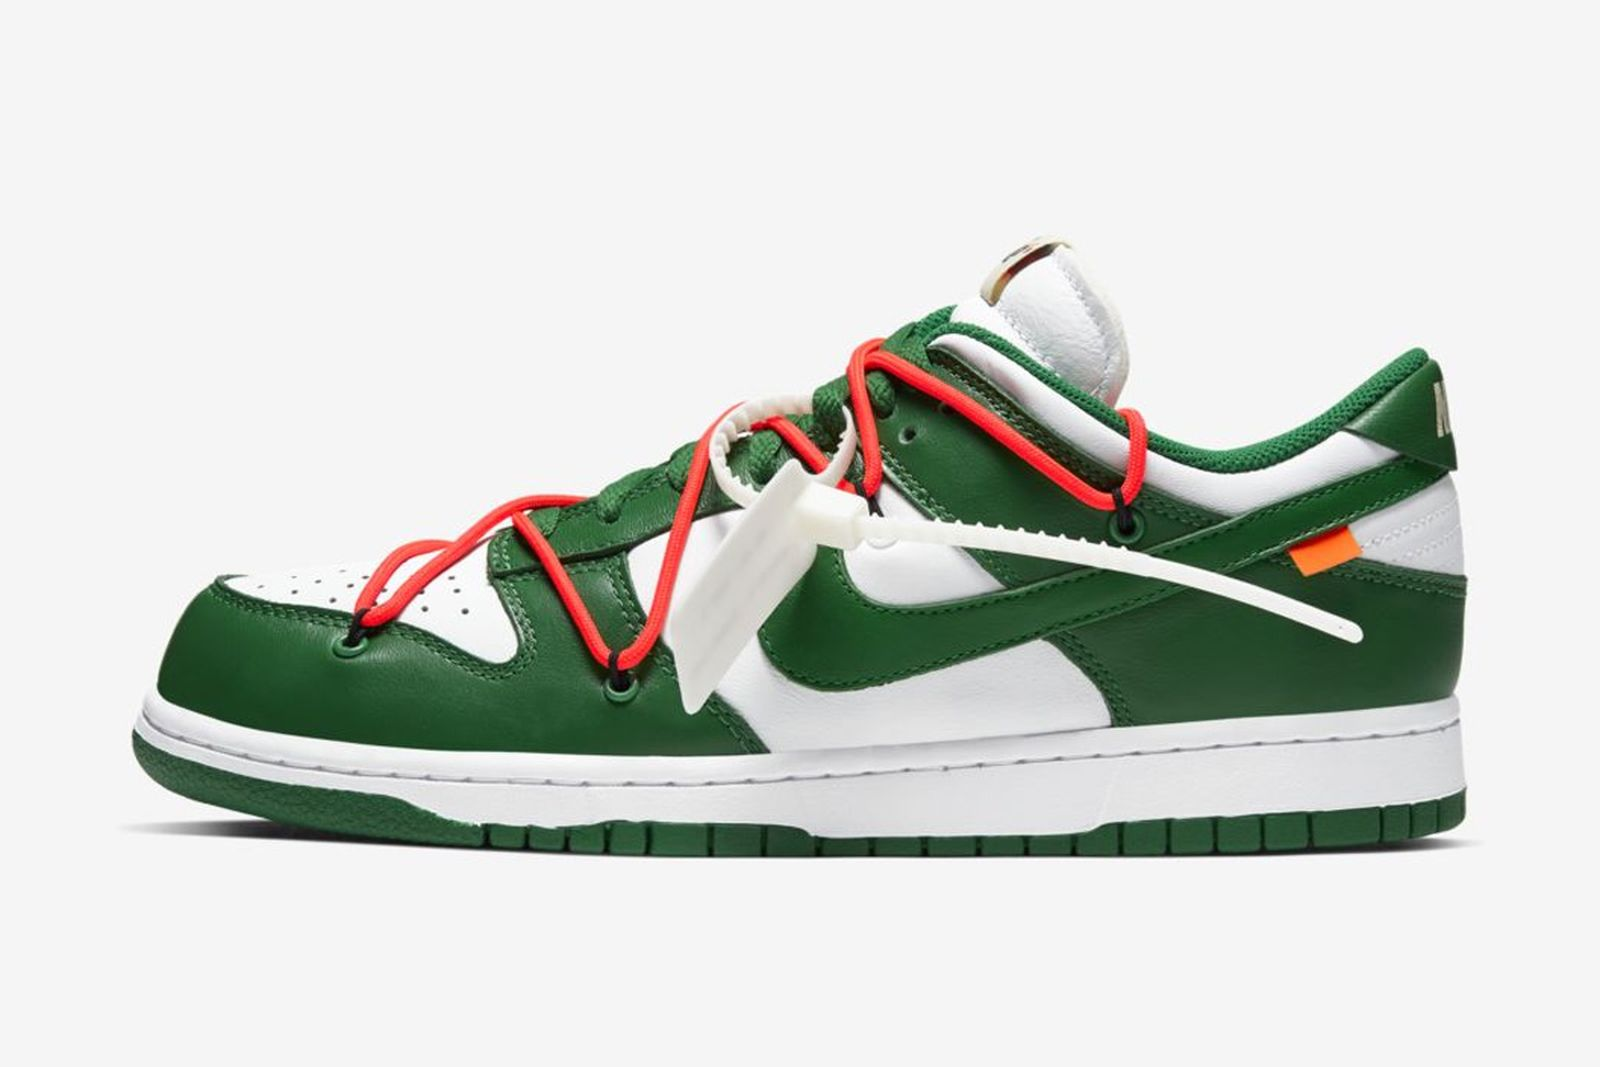 off-white-nike-dunk-low-pack-release-date-price-01